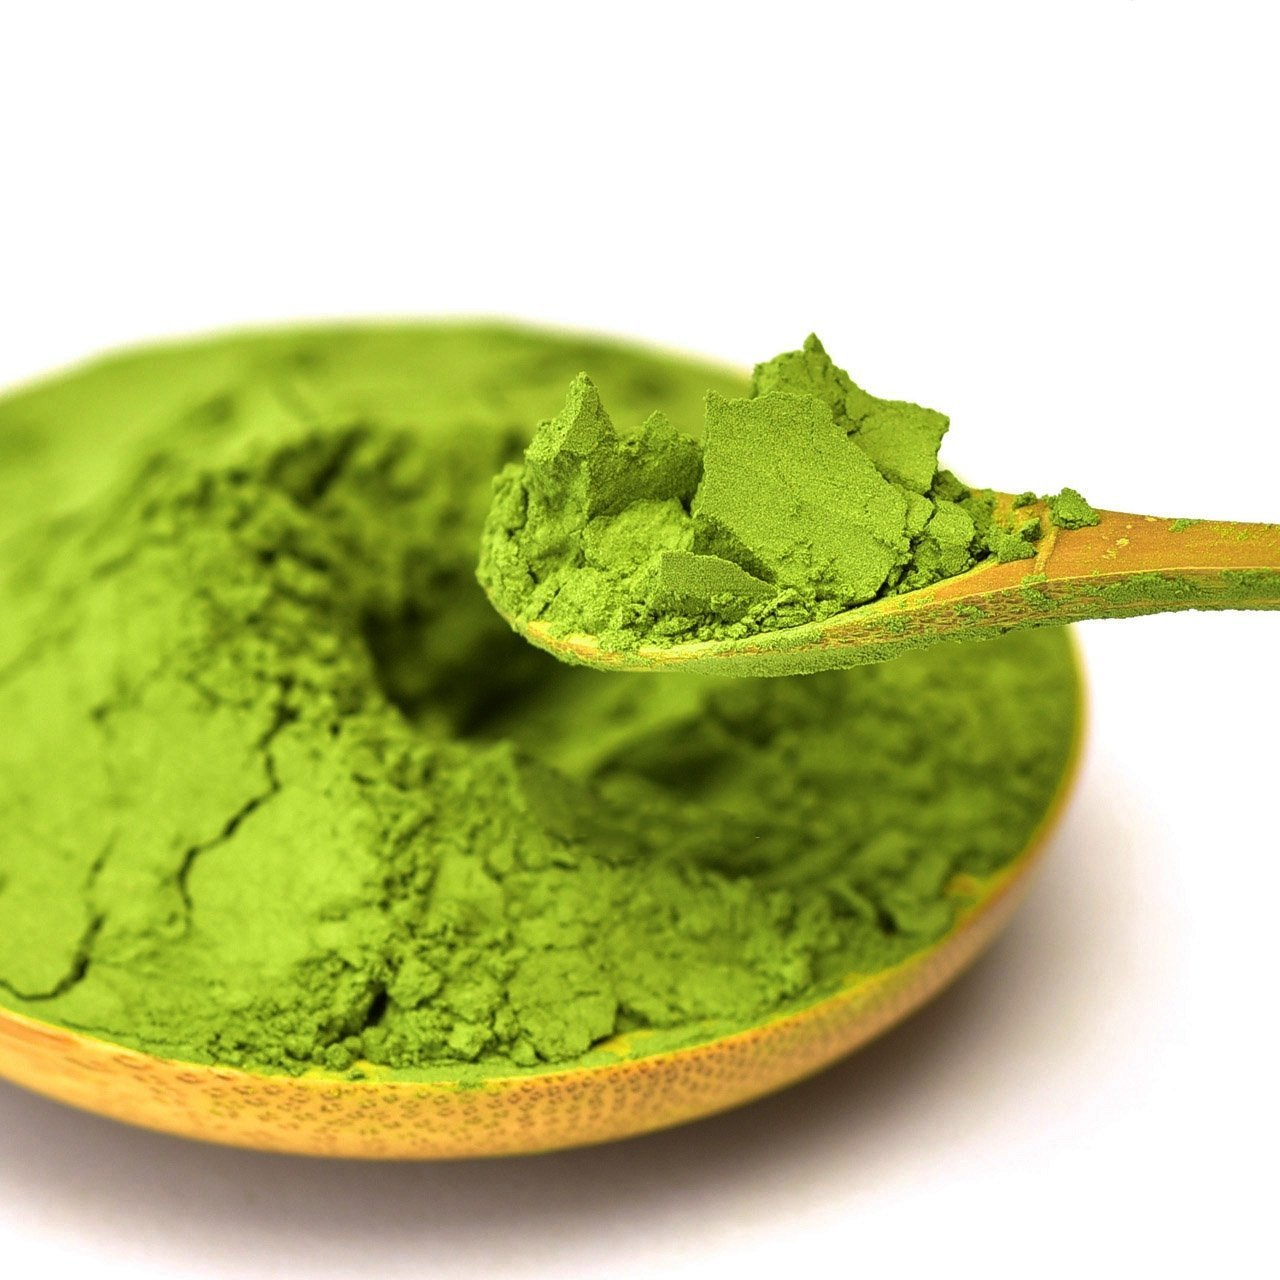 Matcha Green Tea Powder Market Trends, Size and Share with Forecast by 2025